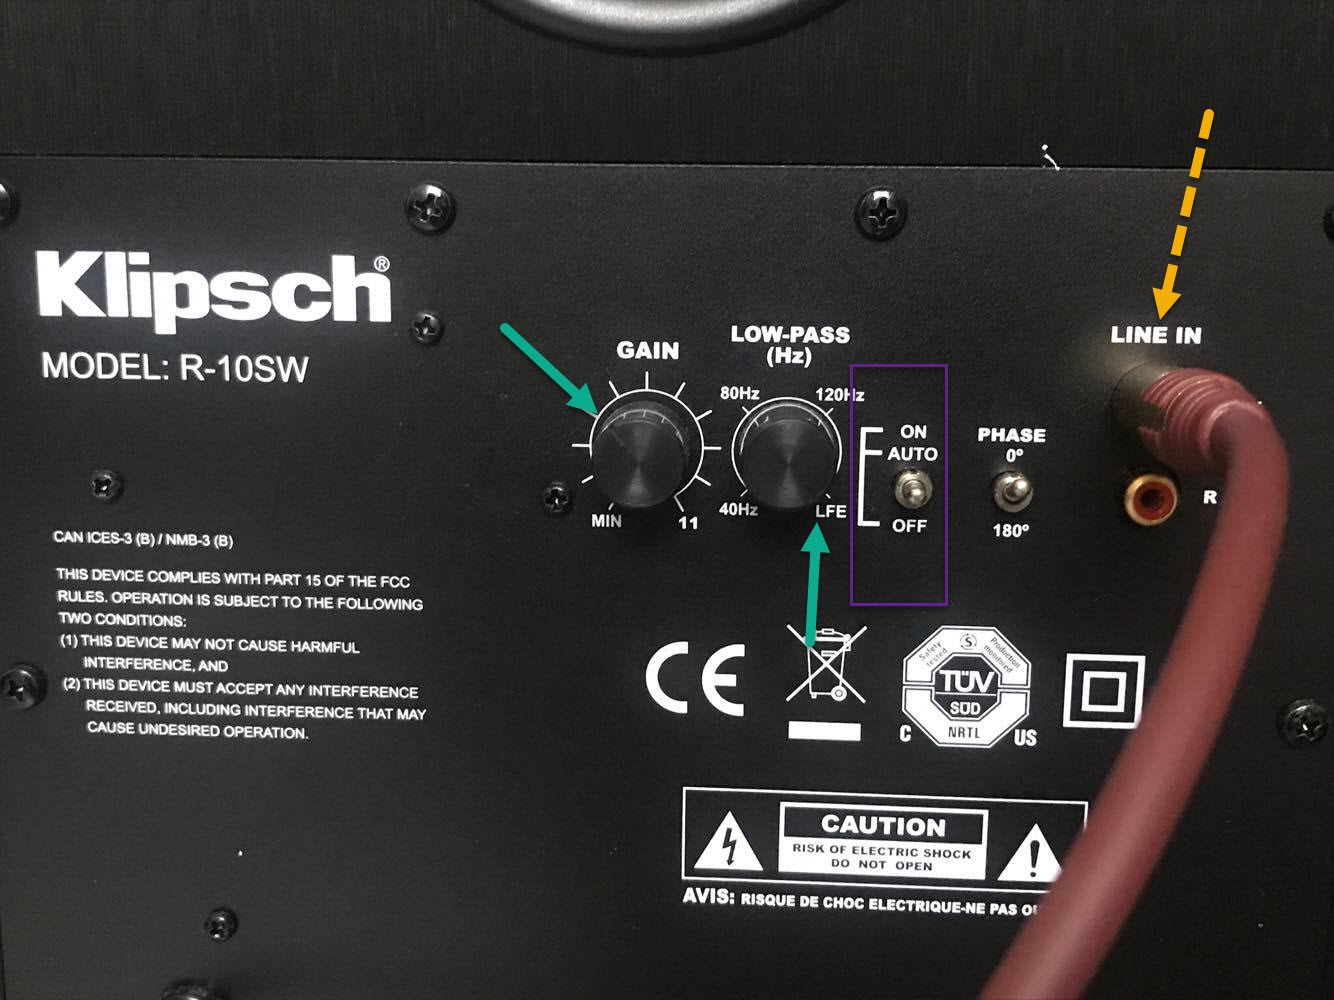 My klipsch Subwoofer wont turn on - Home Theater - The